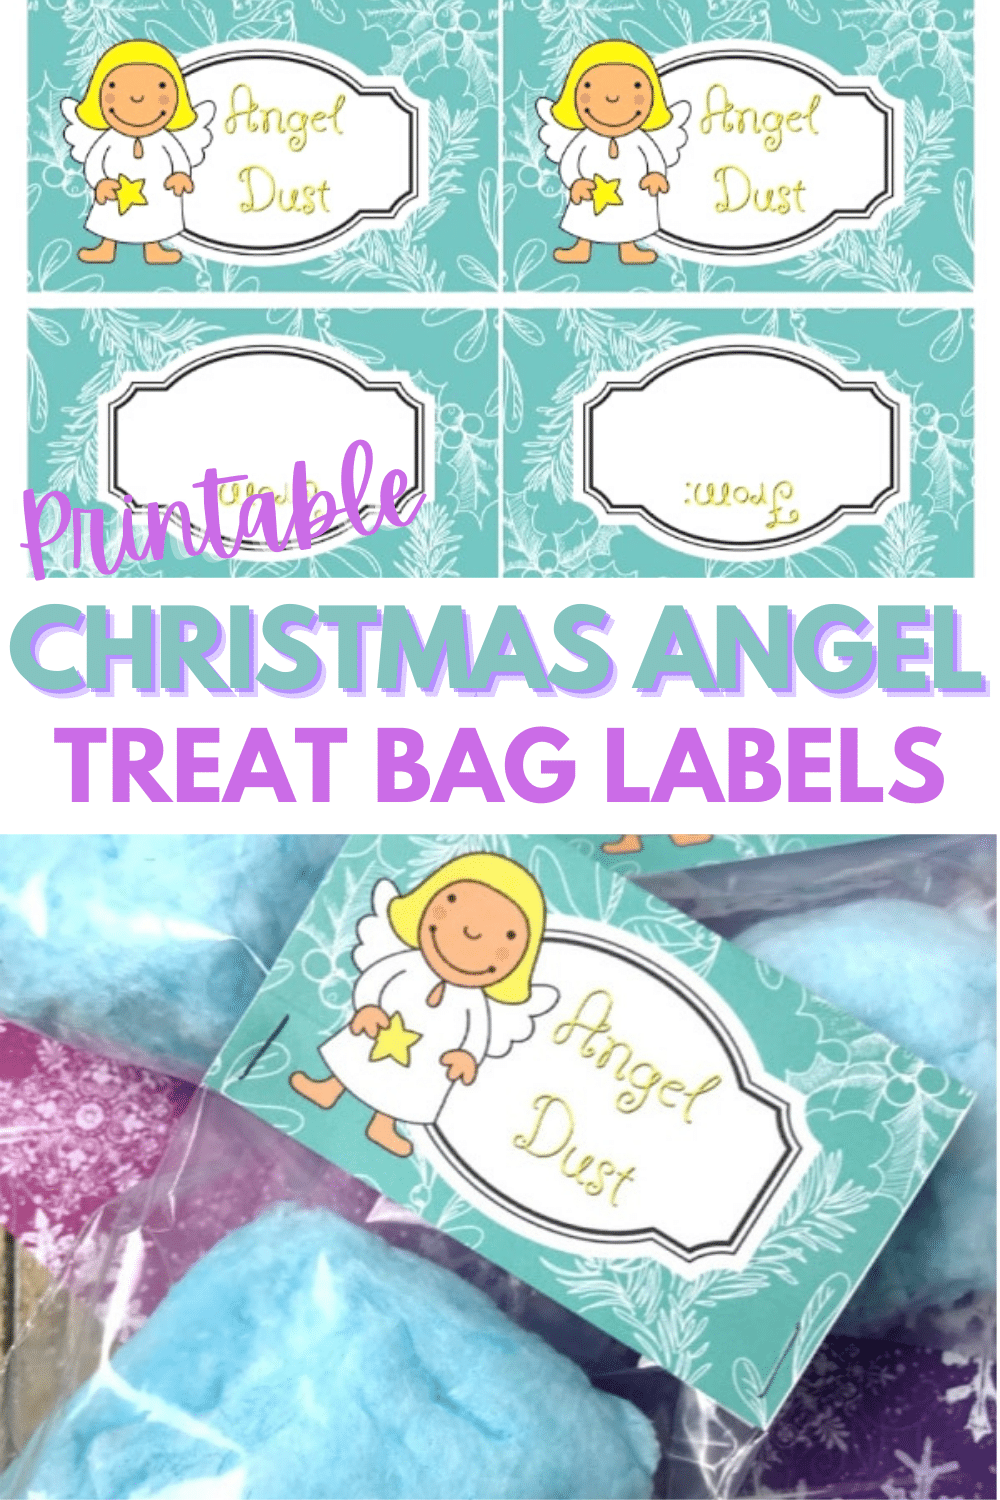 """These printable Christmas Angel Treat Bags are easy to make and kids will love getting a bag of """"angel dust"""" aka blue cotton candy as a treat! #treatbags #printables #christmas via @wondermomwannab"""